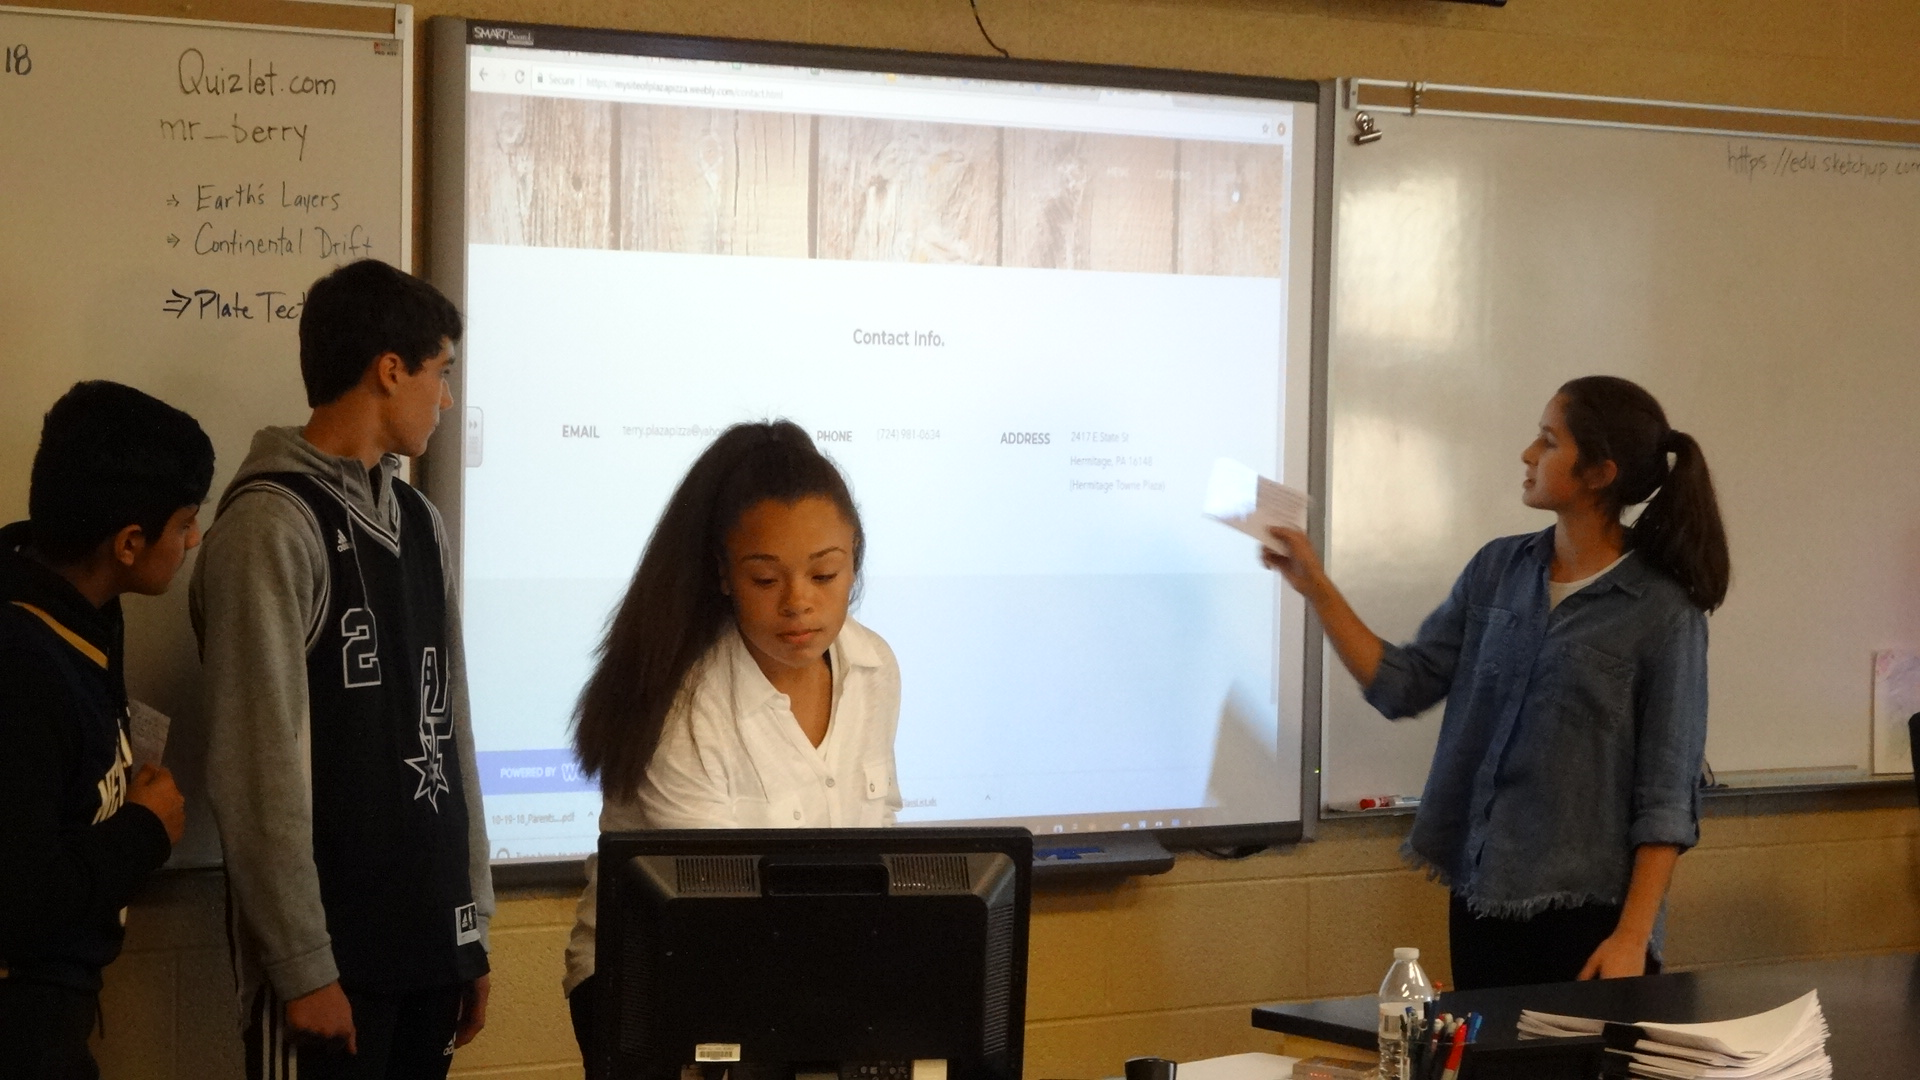 Sophia Hook, right, explains a web site her team created for Plaza Pizza. Also shown are, from left, Tariq Omar, Luca Franz and Jenae Pugh.